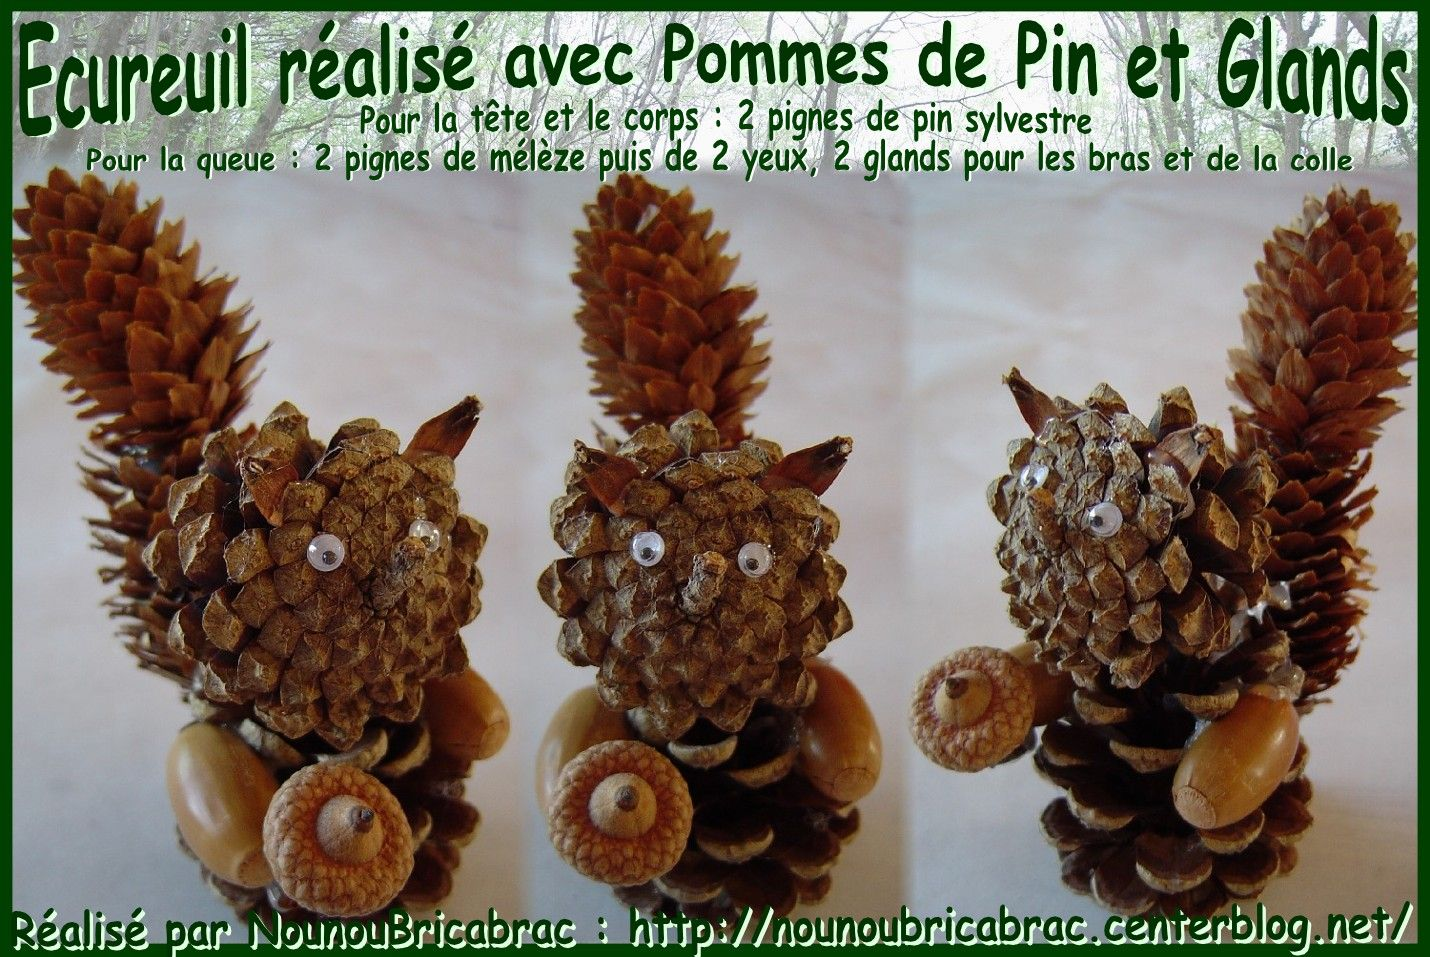 ecureuil fabriqu avec des pommes de pin pomme de pin bricolage photo. Black Bedroom Furniture Sets. Home Design Ideas